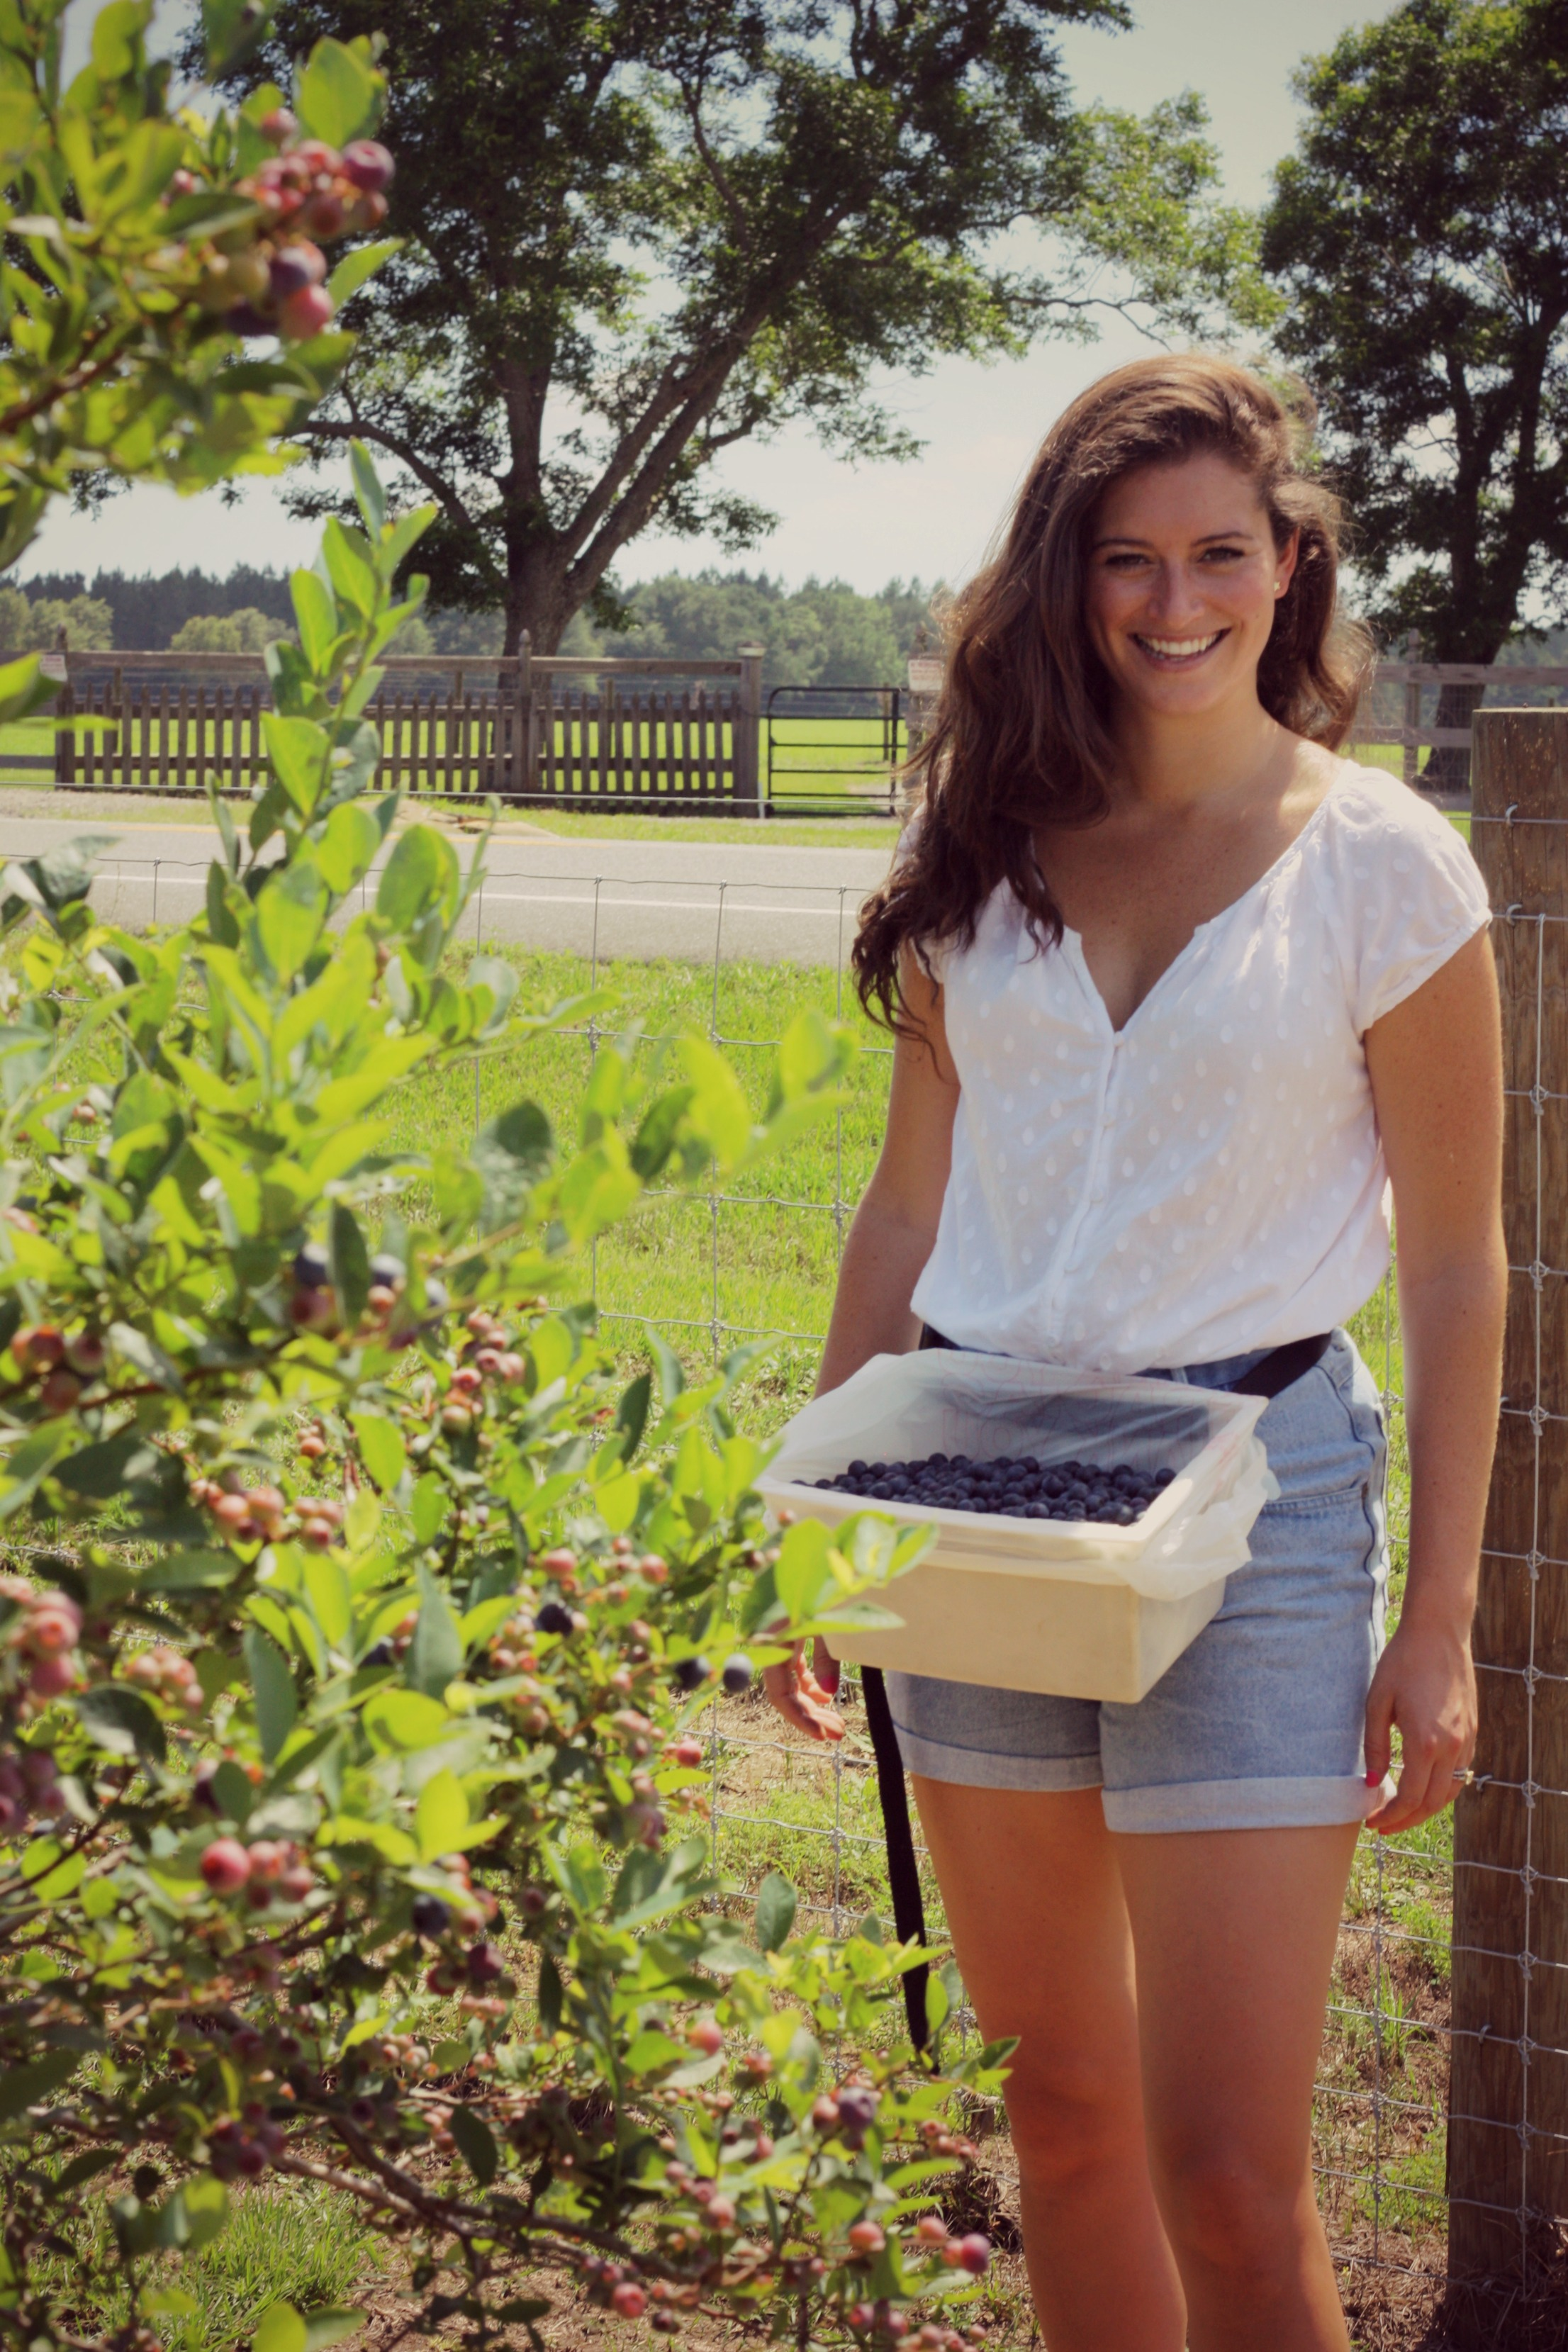 The Gallivant: Blueberry Picking